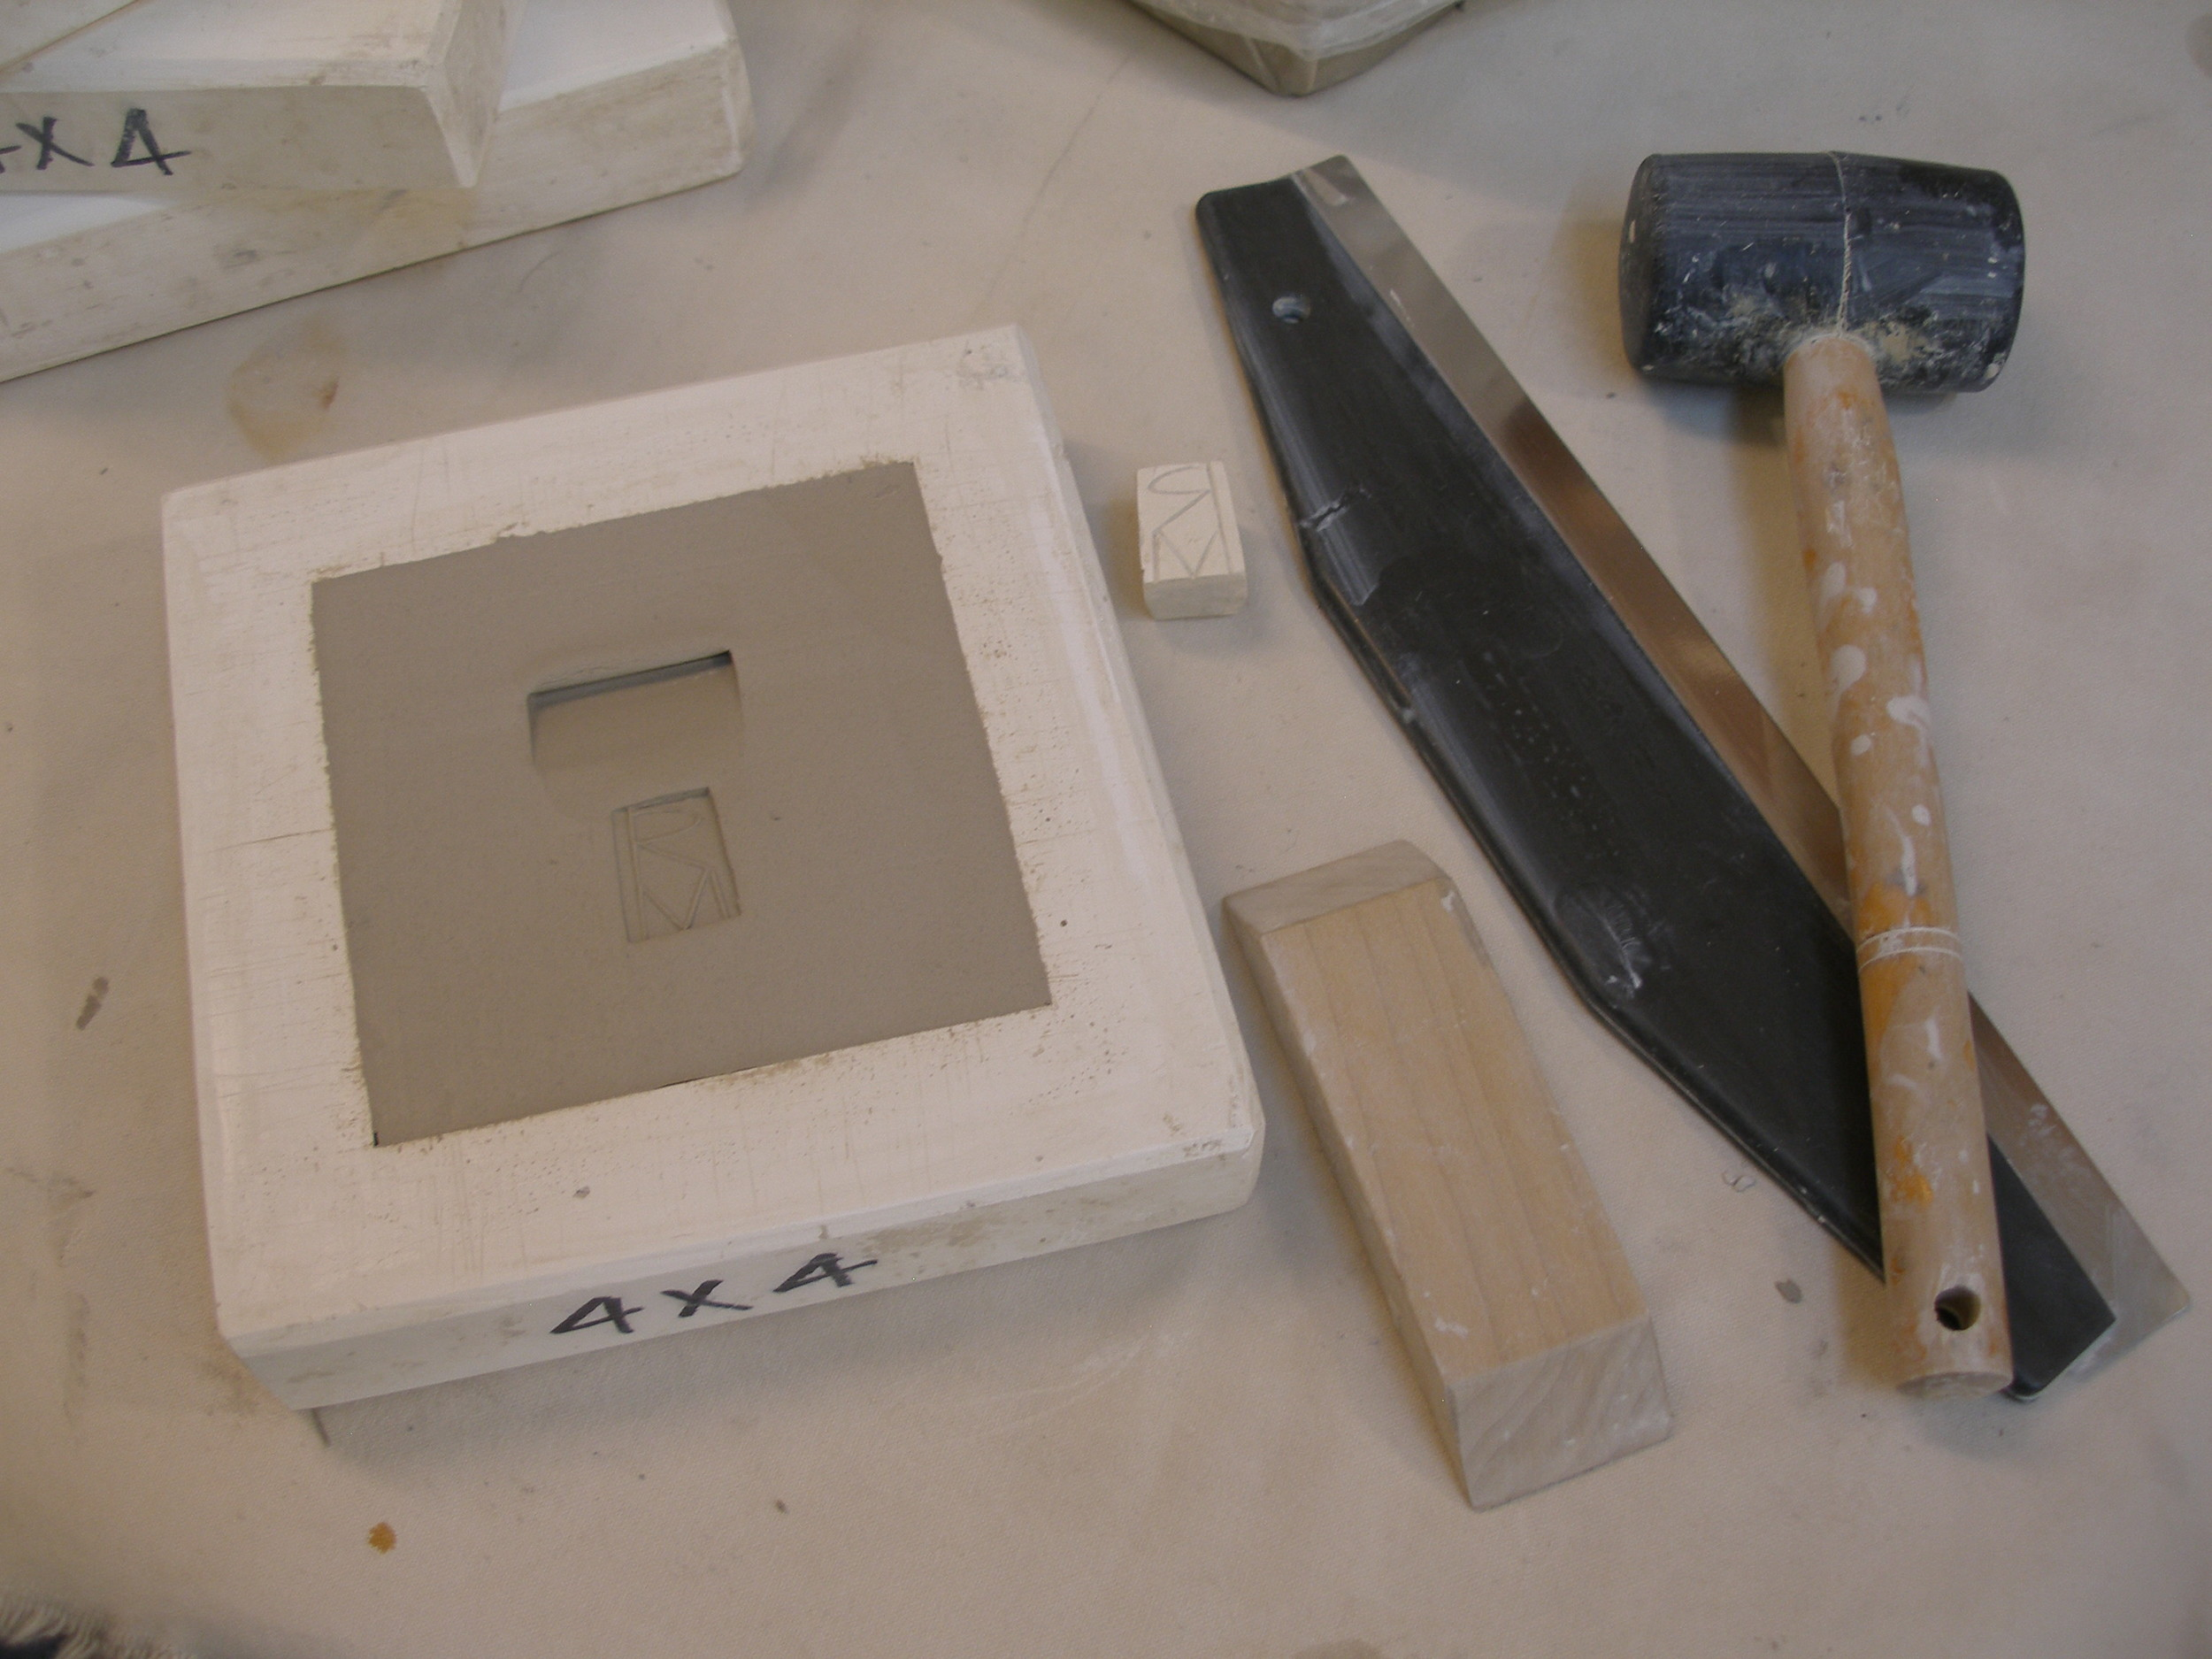 The excess clay is sliced off with a wire tool, and the back of the tile is scraped and smoothed flat. A beveled piece of wood is pressed in to create an indentation for hanging. The tile is also stamped with the maker's mark.  The tile will dry for several hours. As the plaster draws moisture from the clay, the tile begins to shrink away from the mold. The mold can then be inverted onto a board, the tile will drop out, and the mold removed.